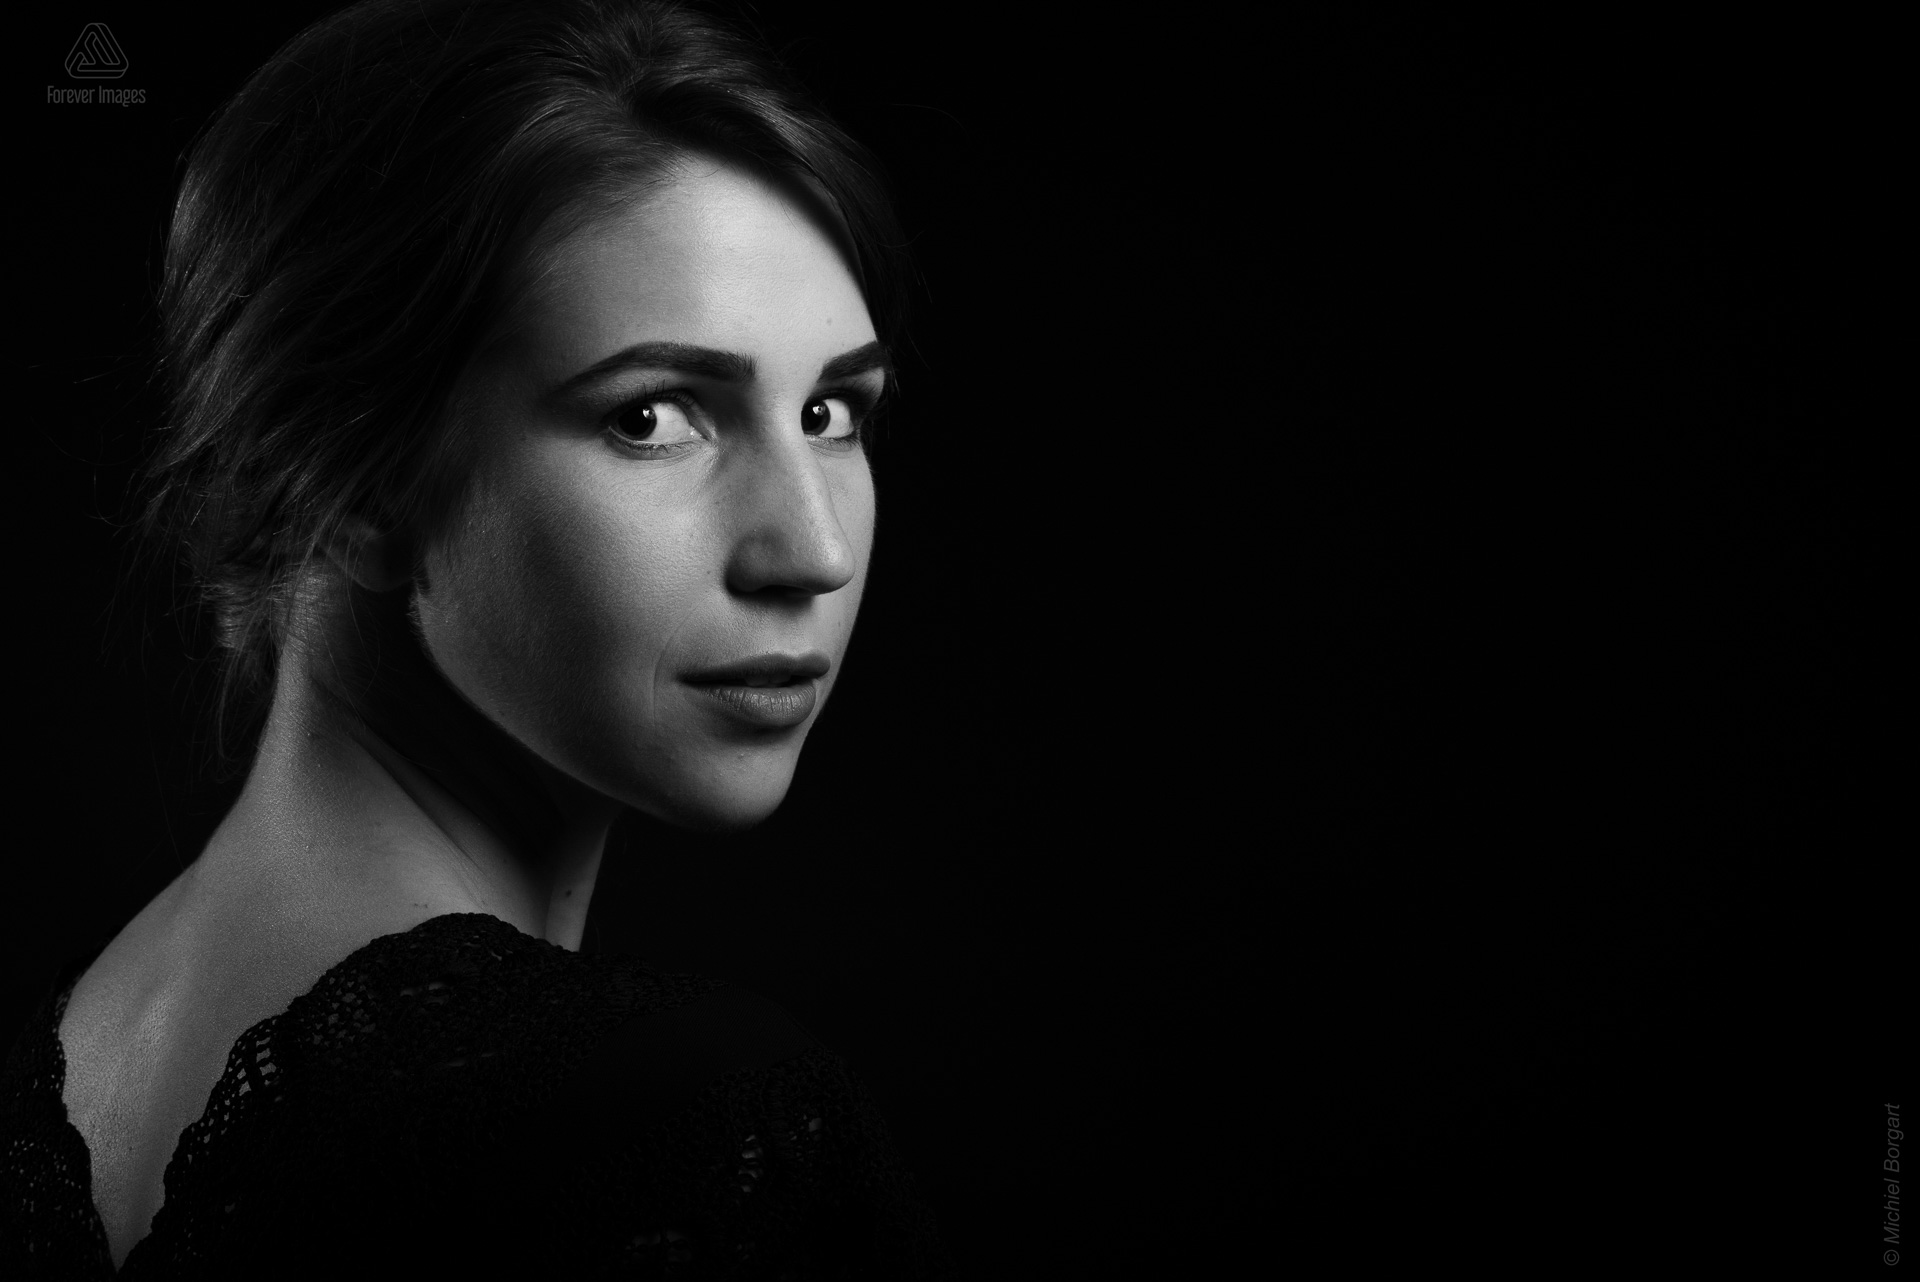 Portrait photo black and white B&W young lady looking sideways low key | Noah Doornebal | Portrait Photographer Michiel Borgart - Forever Images.